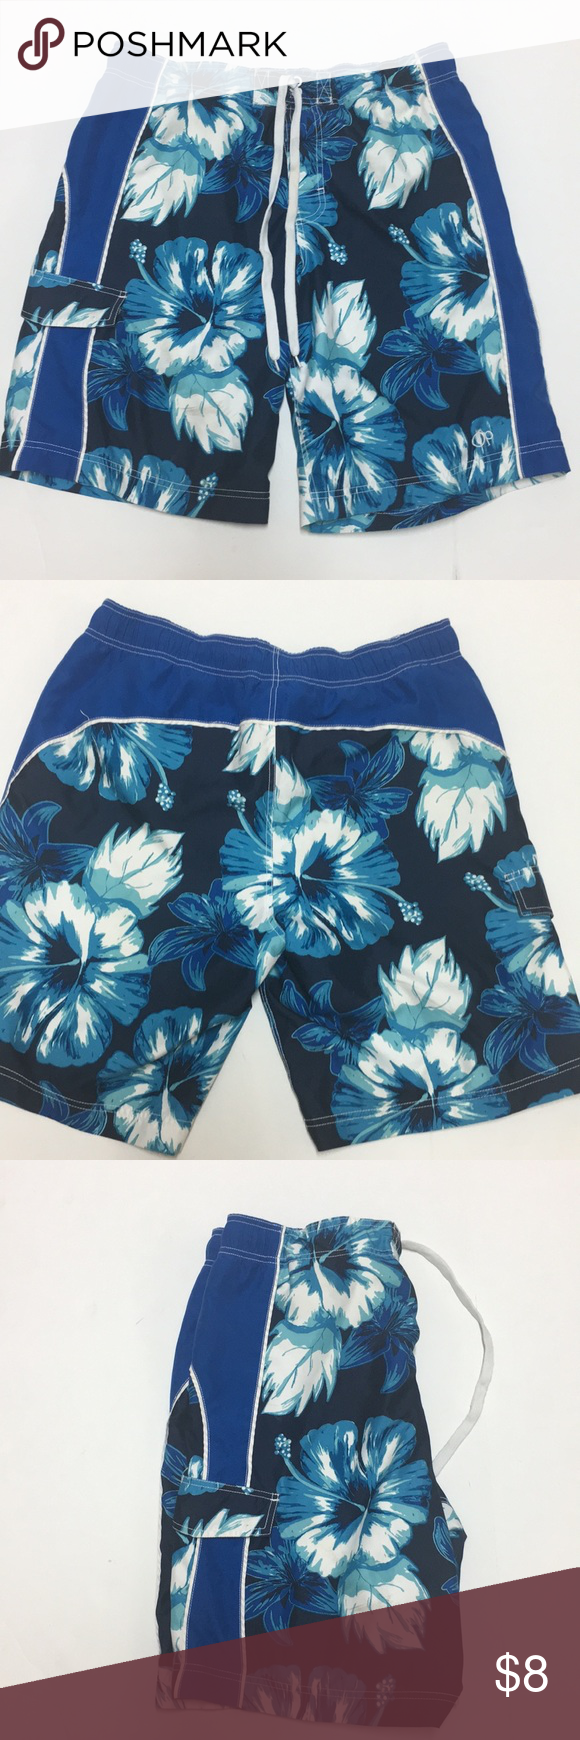 3baefd4b50b01 Men's OP swim trunks A great color & in EUC Men's Swim Trunks with tie at  waist. One pocket Men's Large Waist Size ( 36-38) OP Swim Swim Trunks